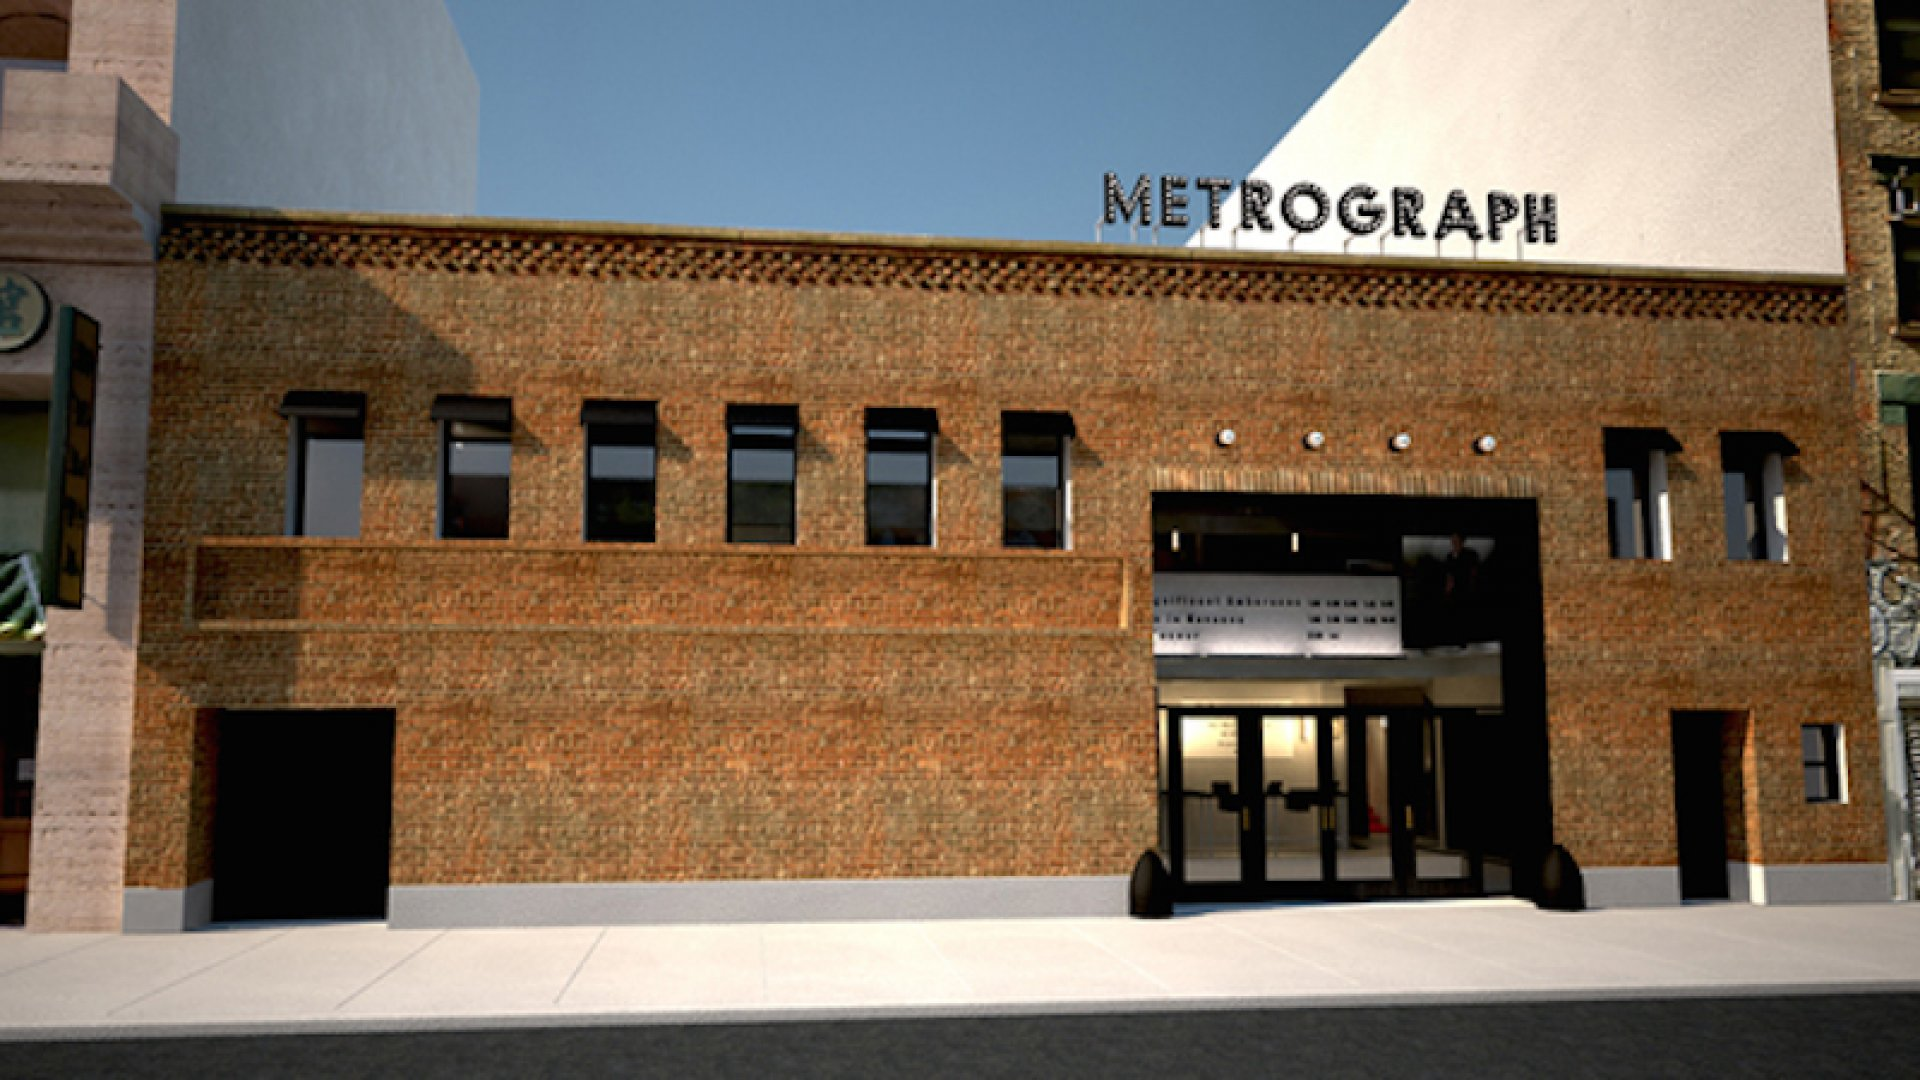 A rendering of the Metrograph theater on Manhattan's Lower East Side.